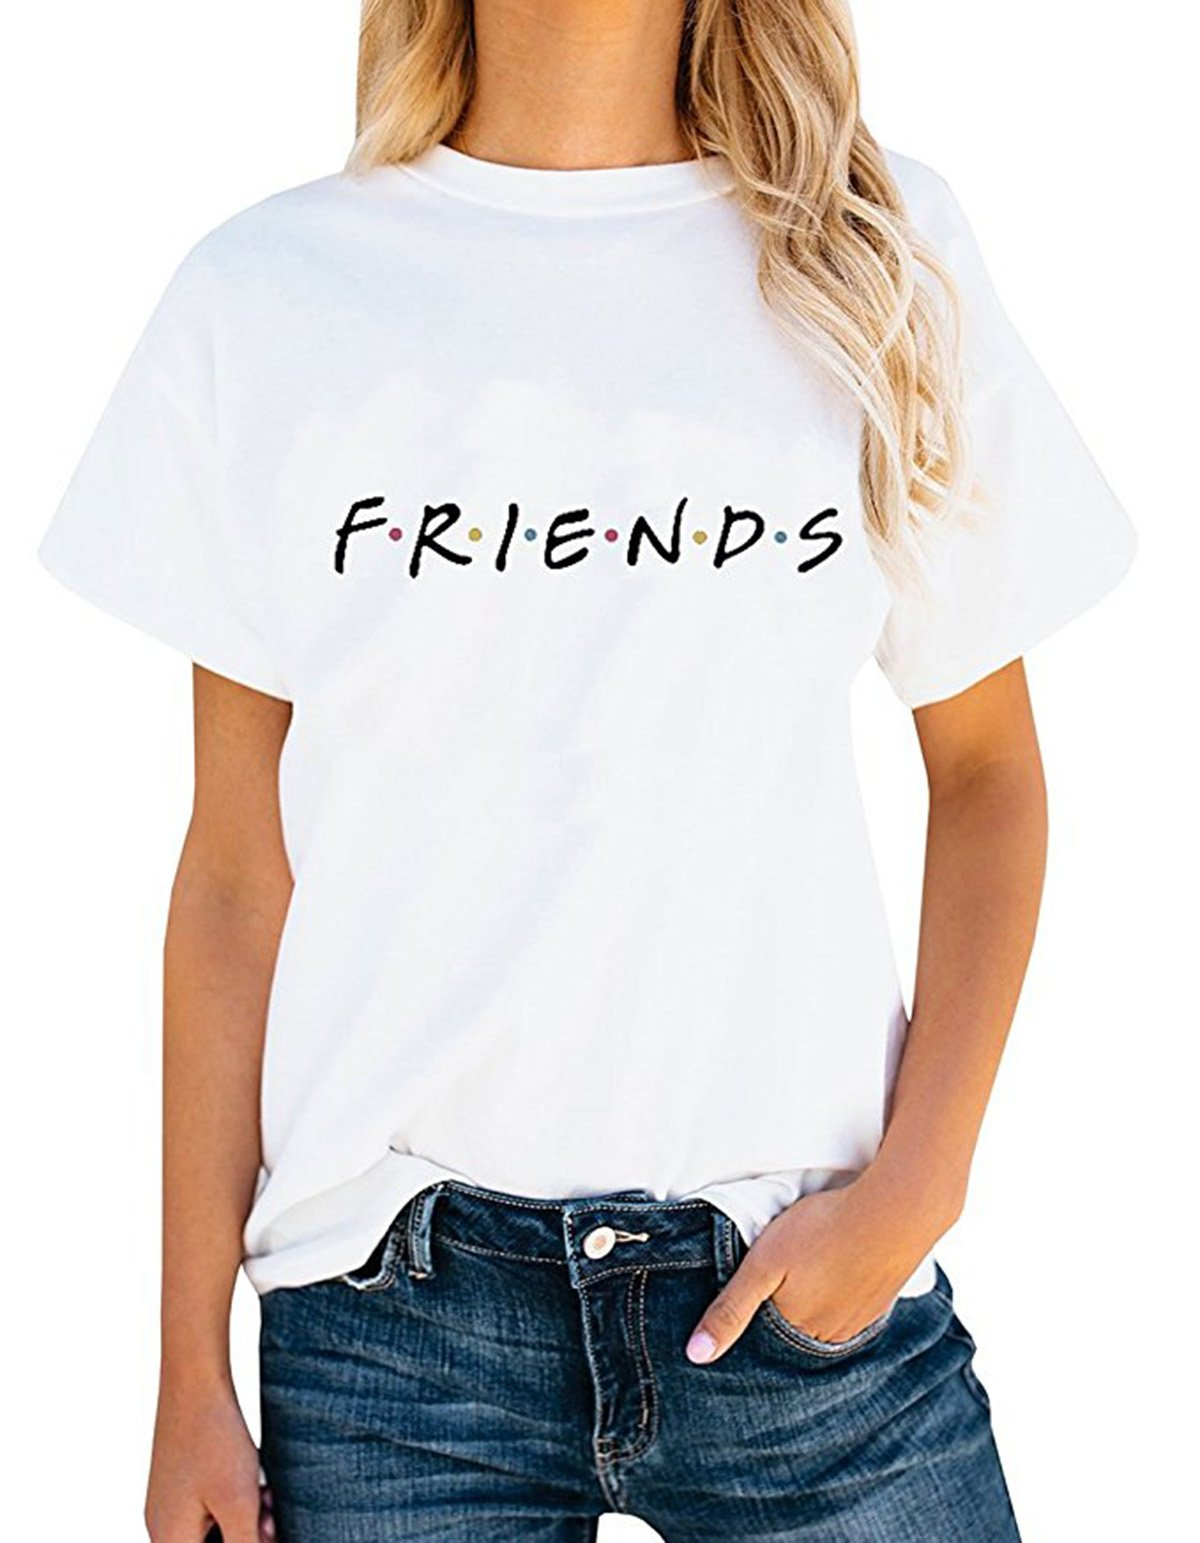 Friends TV Show Shirt Summer Graphic Tees Tops White S